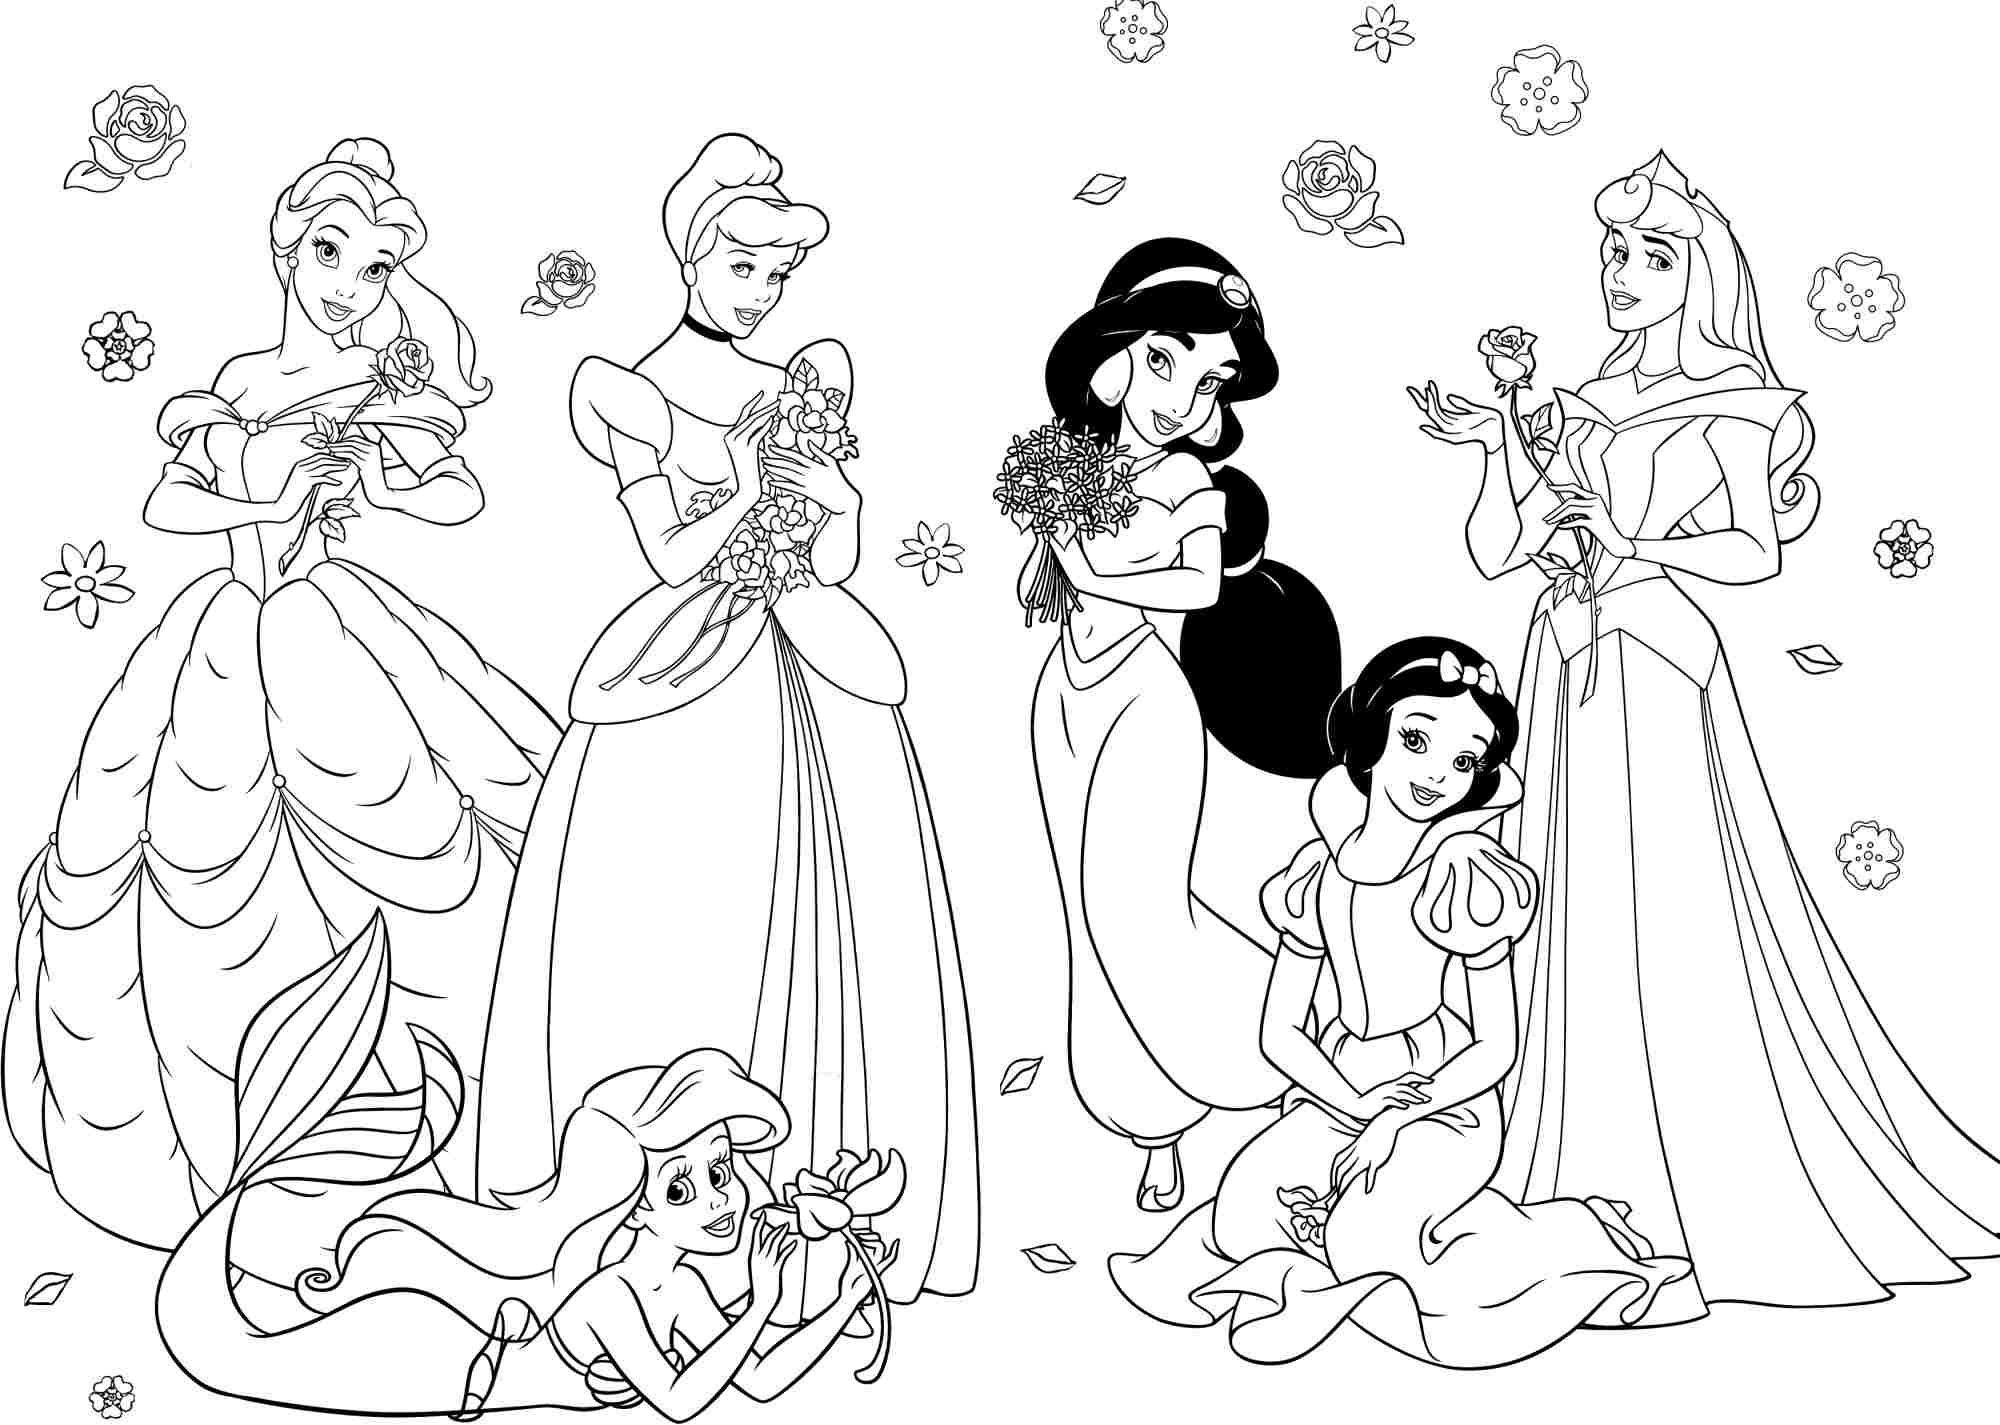 Princess coloring in page - Princess Coloring Pages For Girls Free Large Images